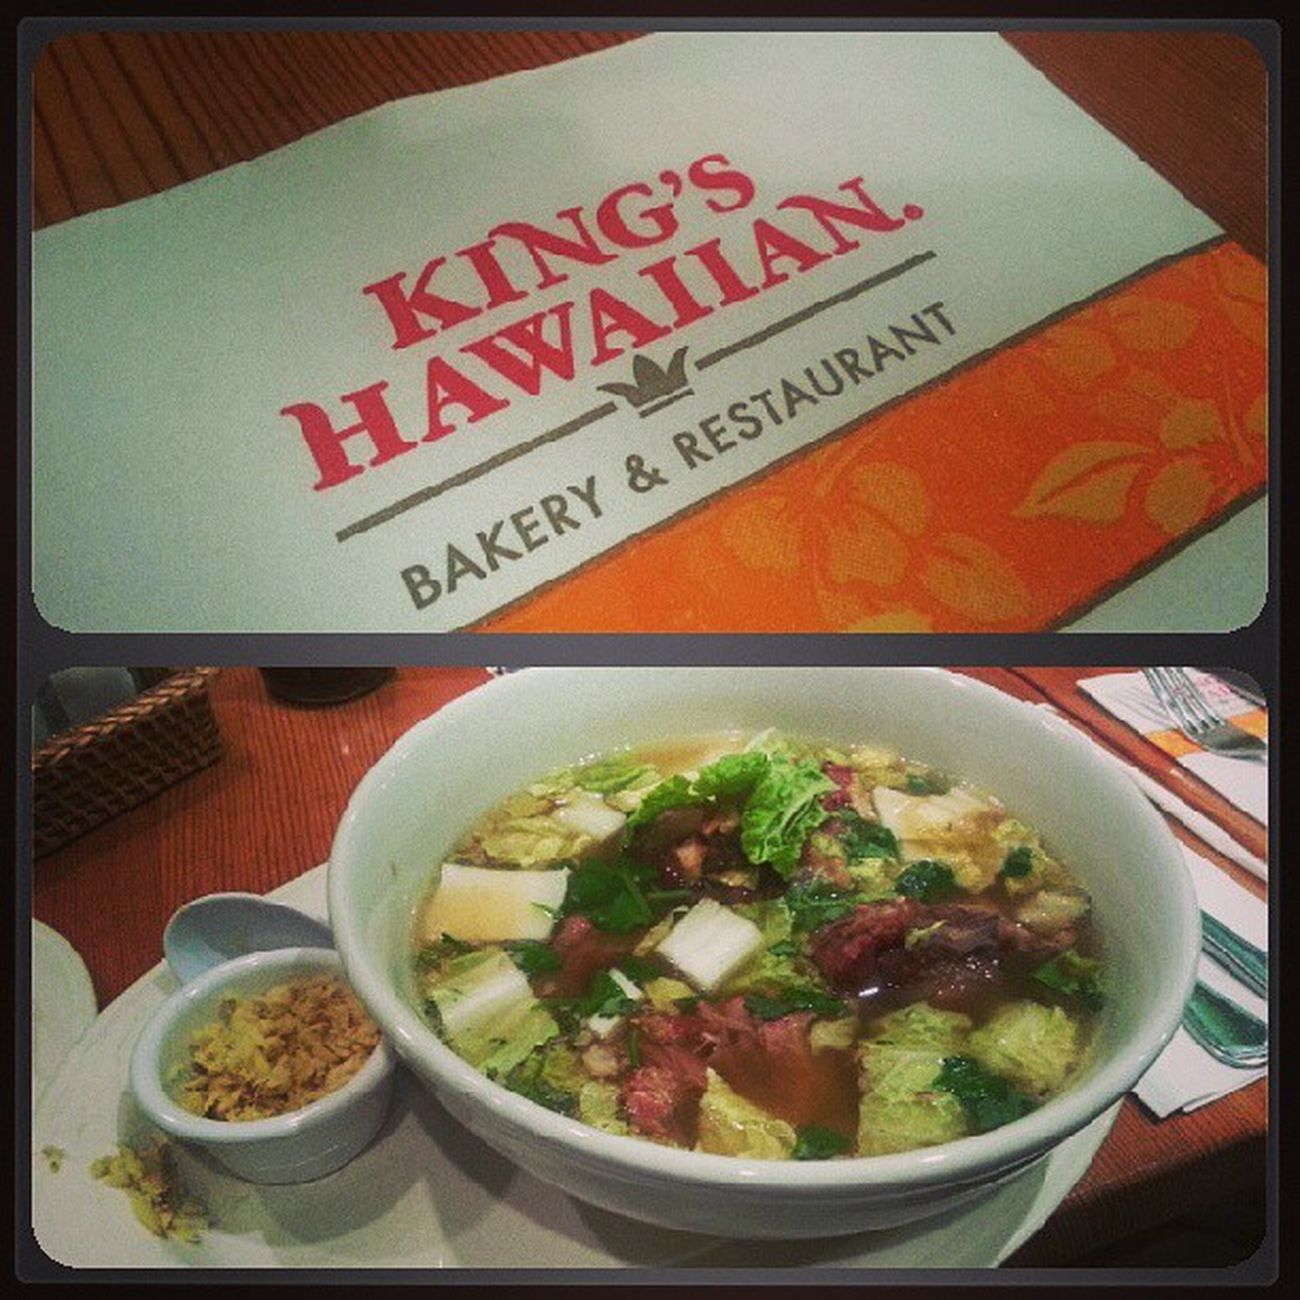 Poping my Kingshawaiian cherry. The ox tail soup is fire.